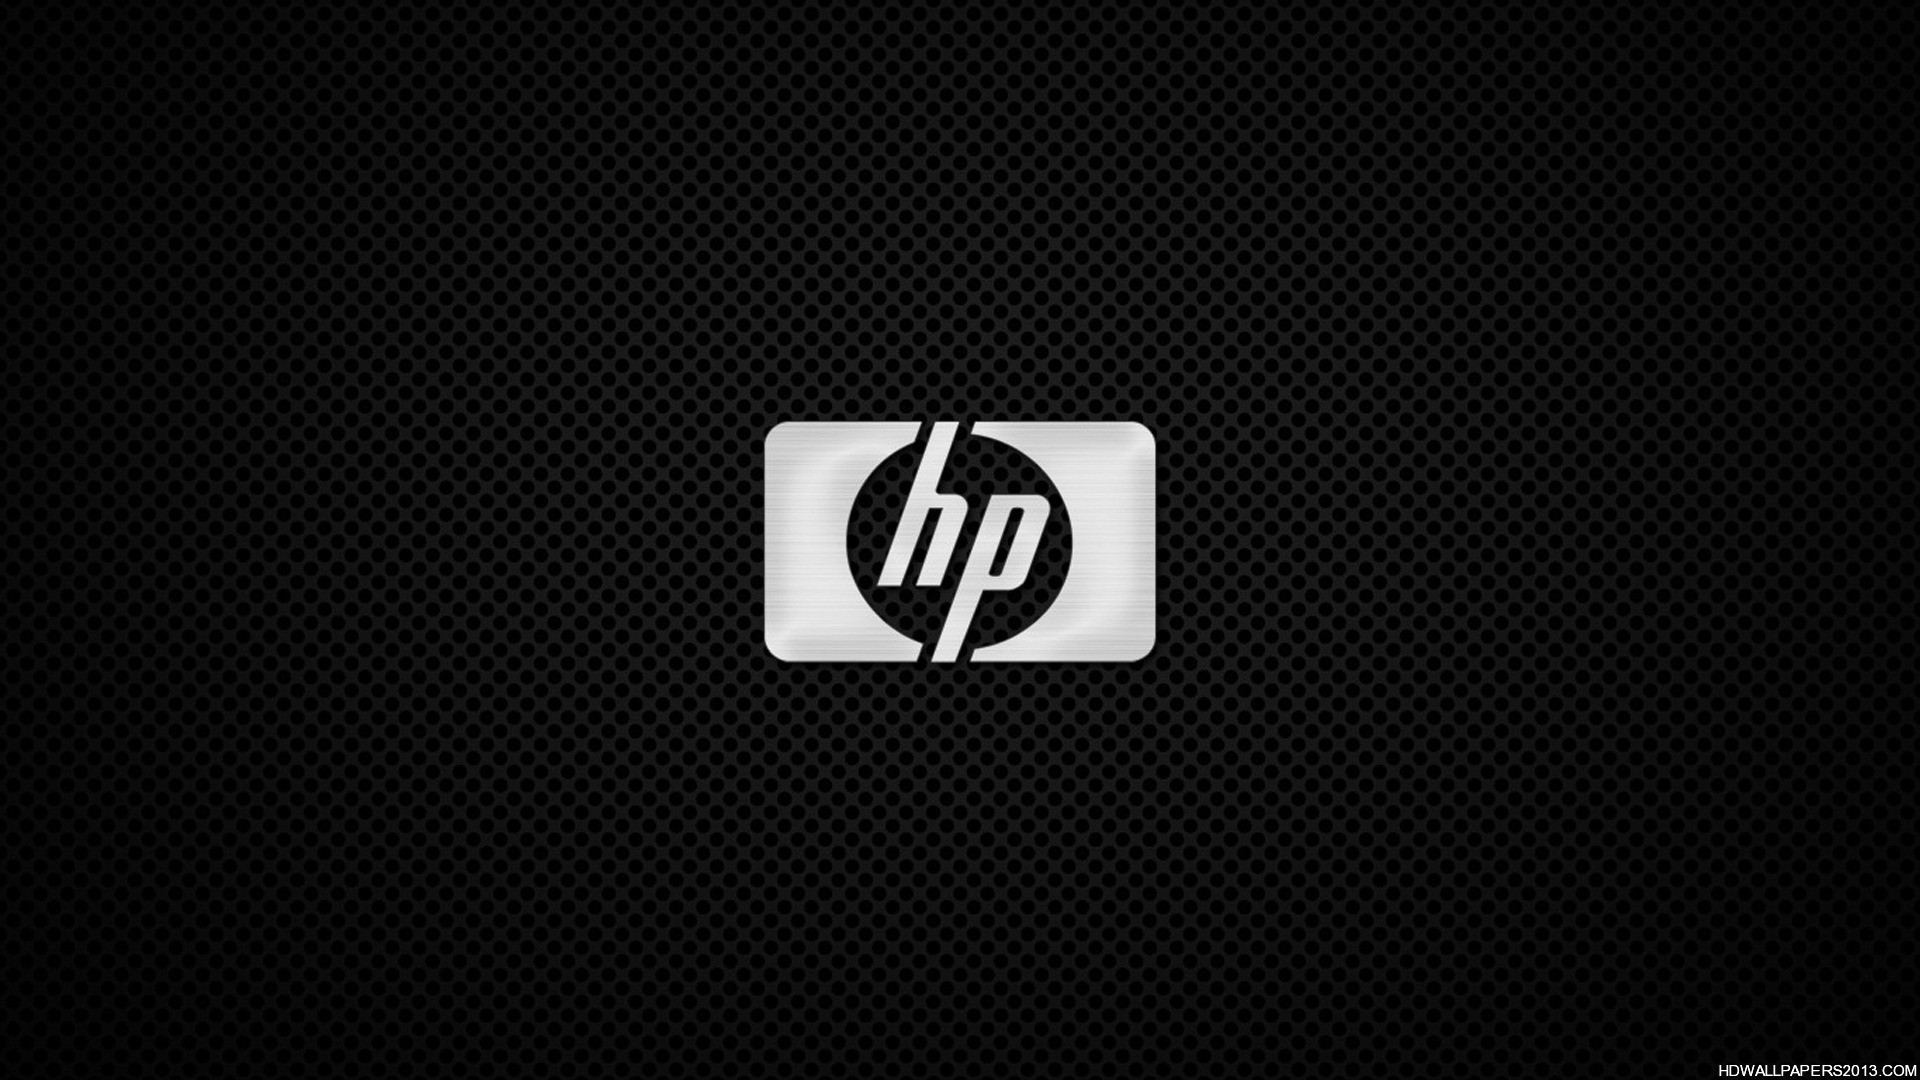 Hp wallpaper for laptop high definition wallpapers high - Hp screensaver ...